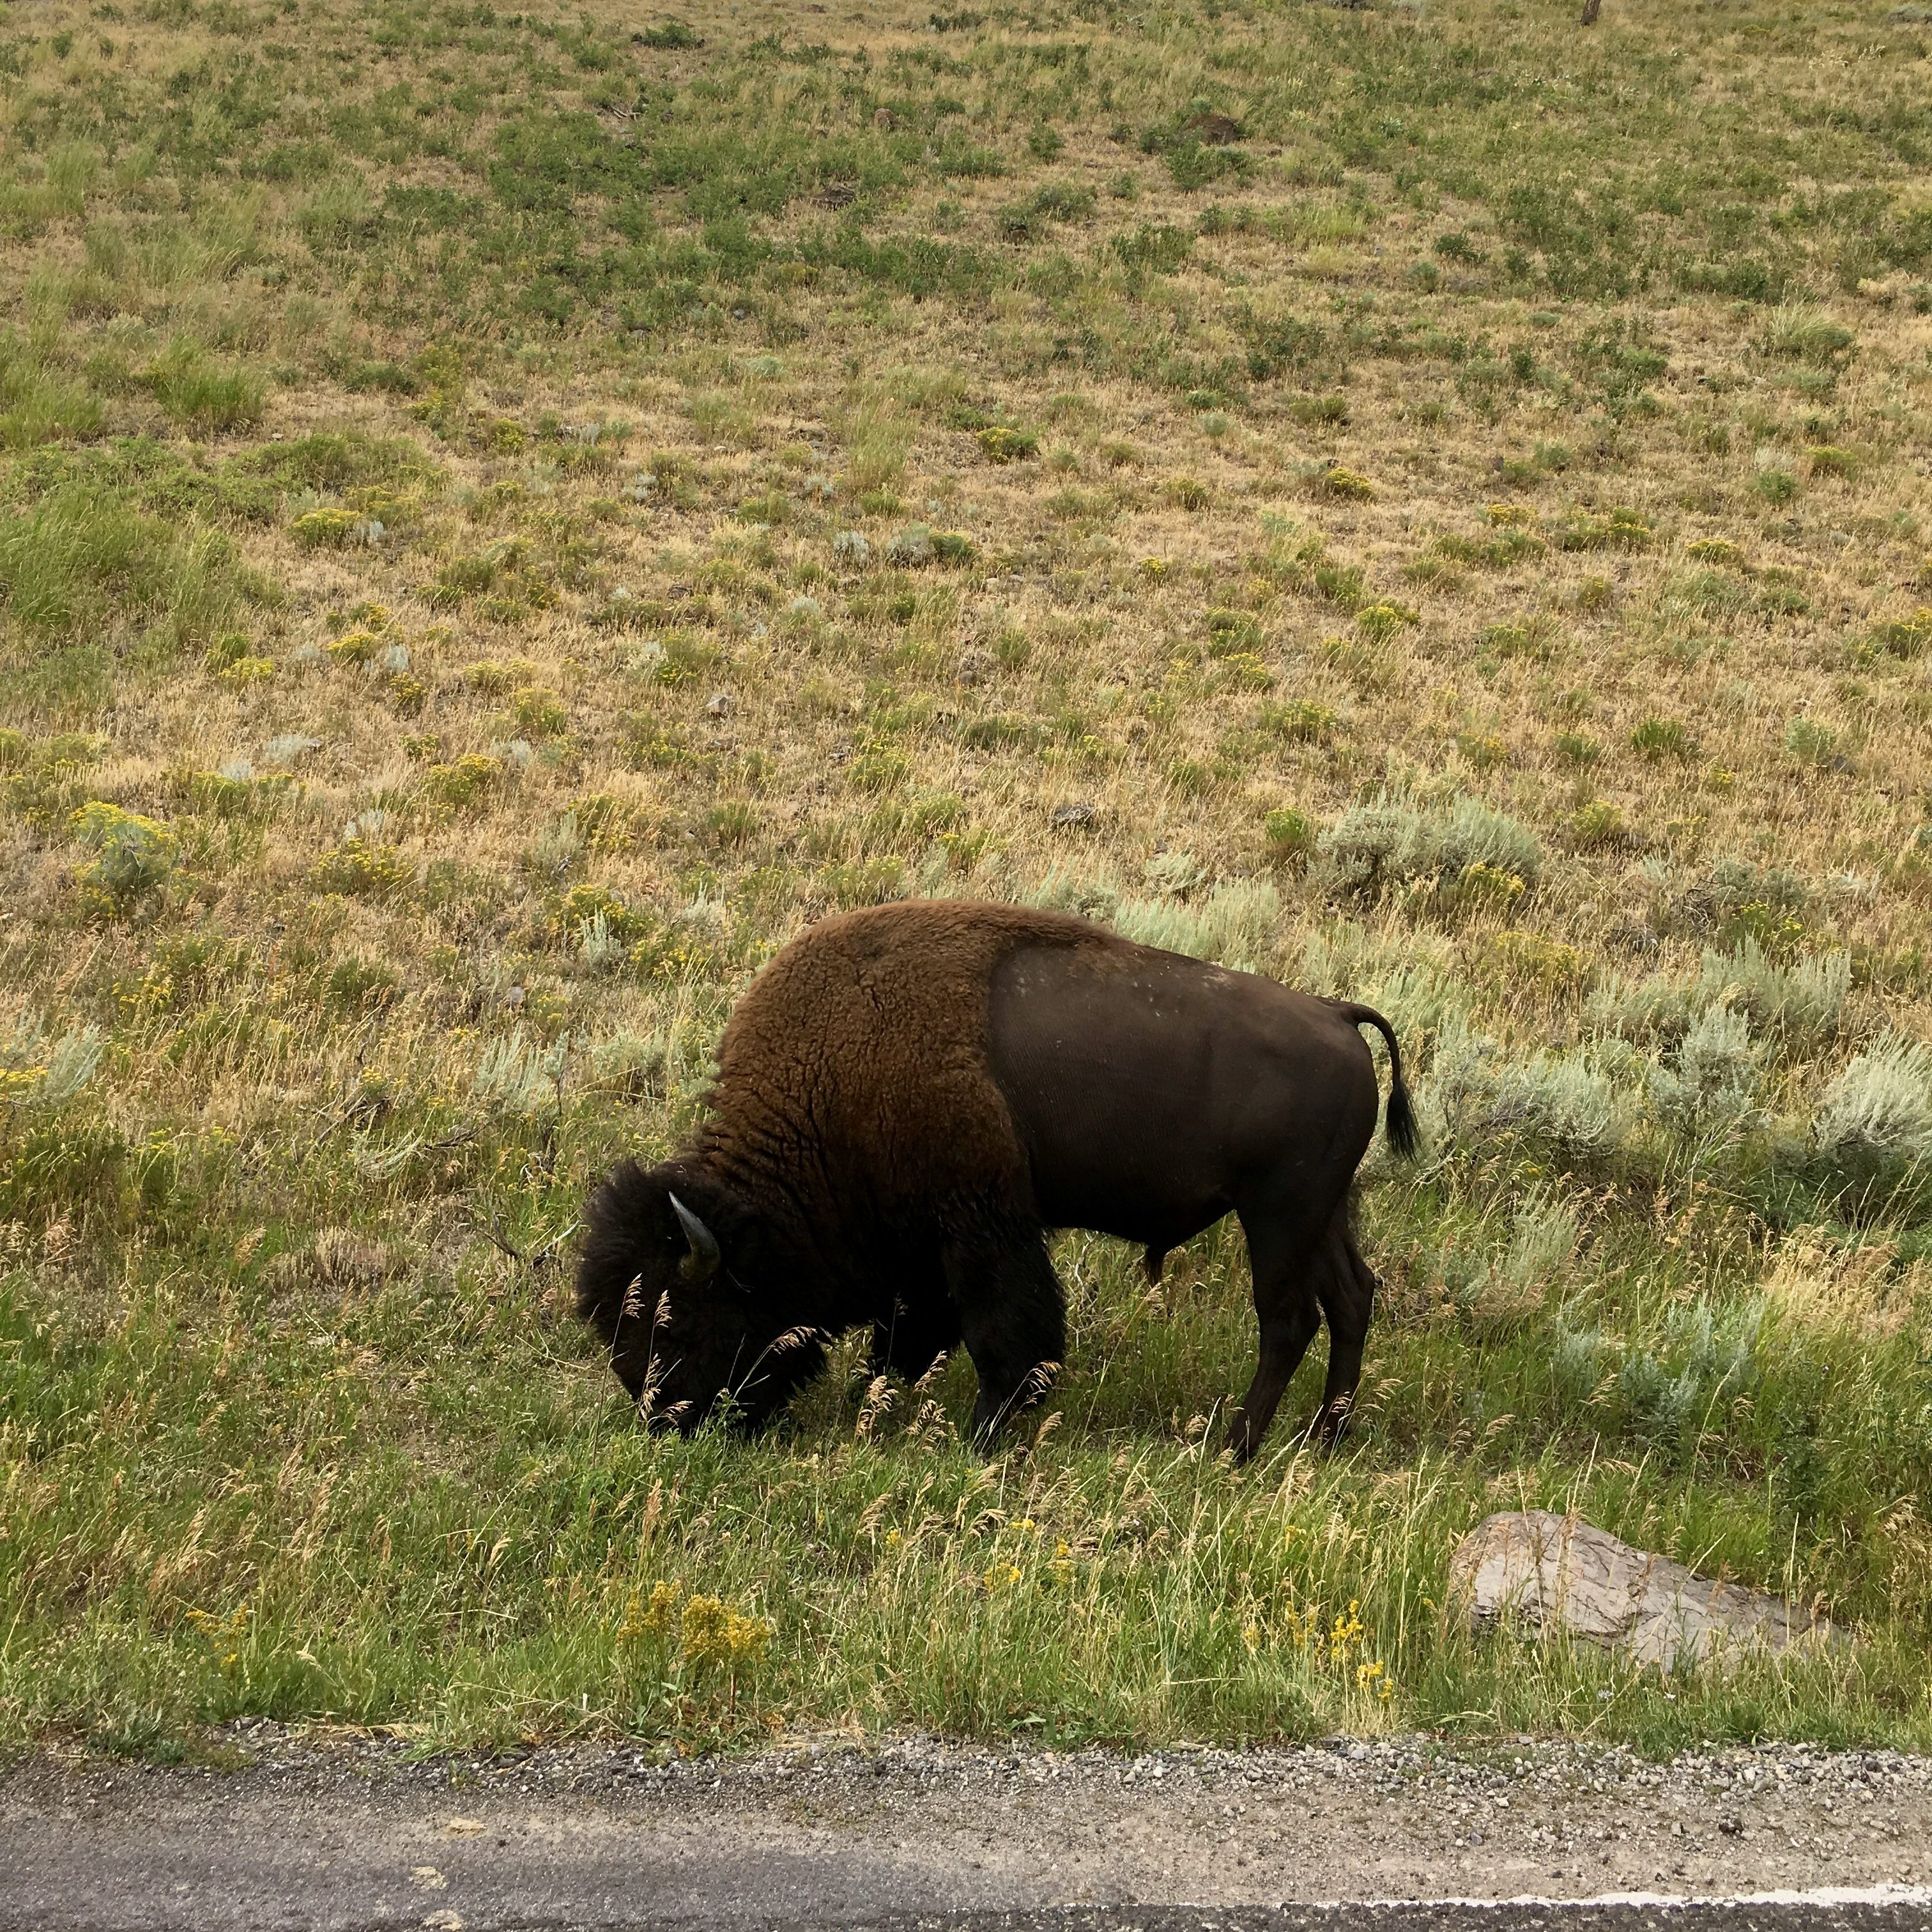 Drive through Yellowstone